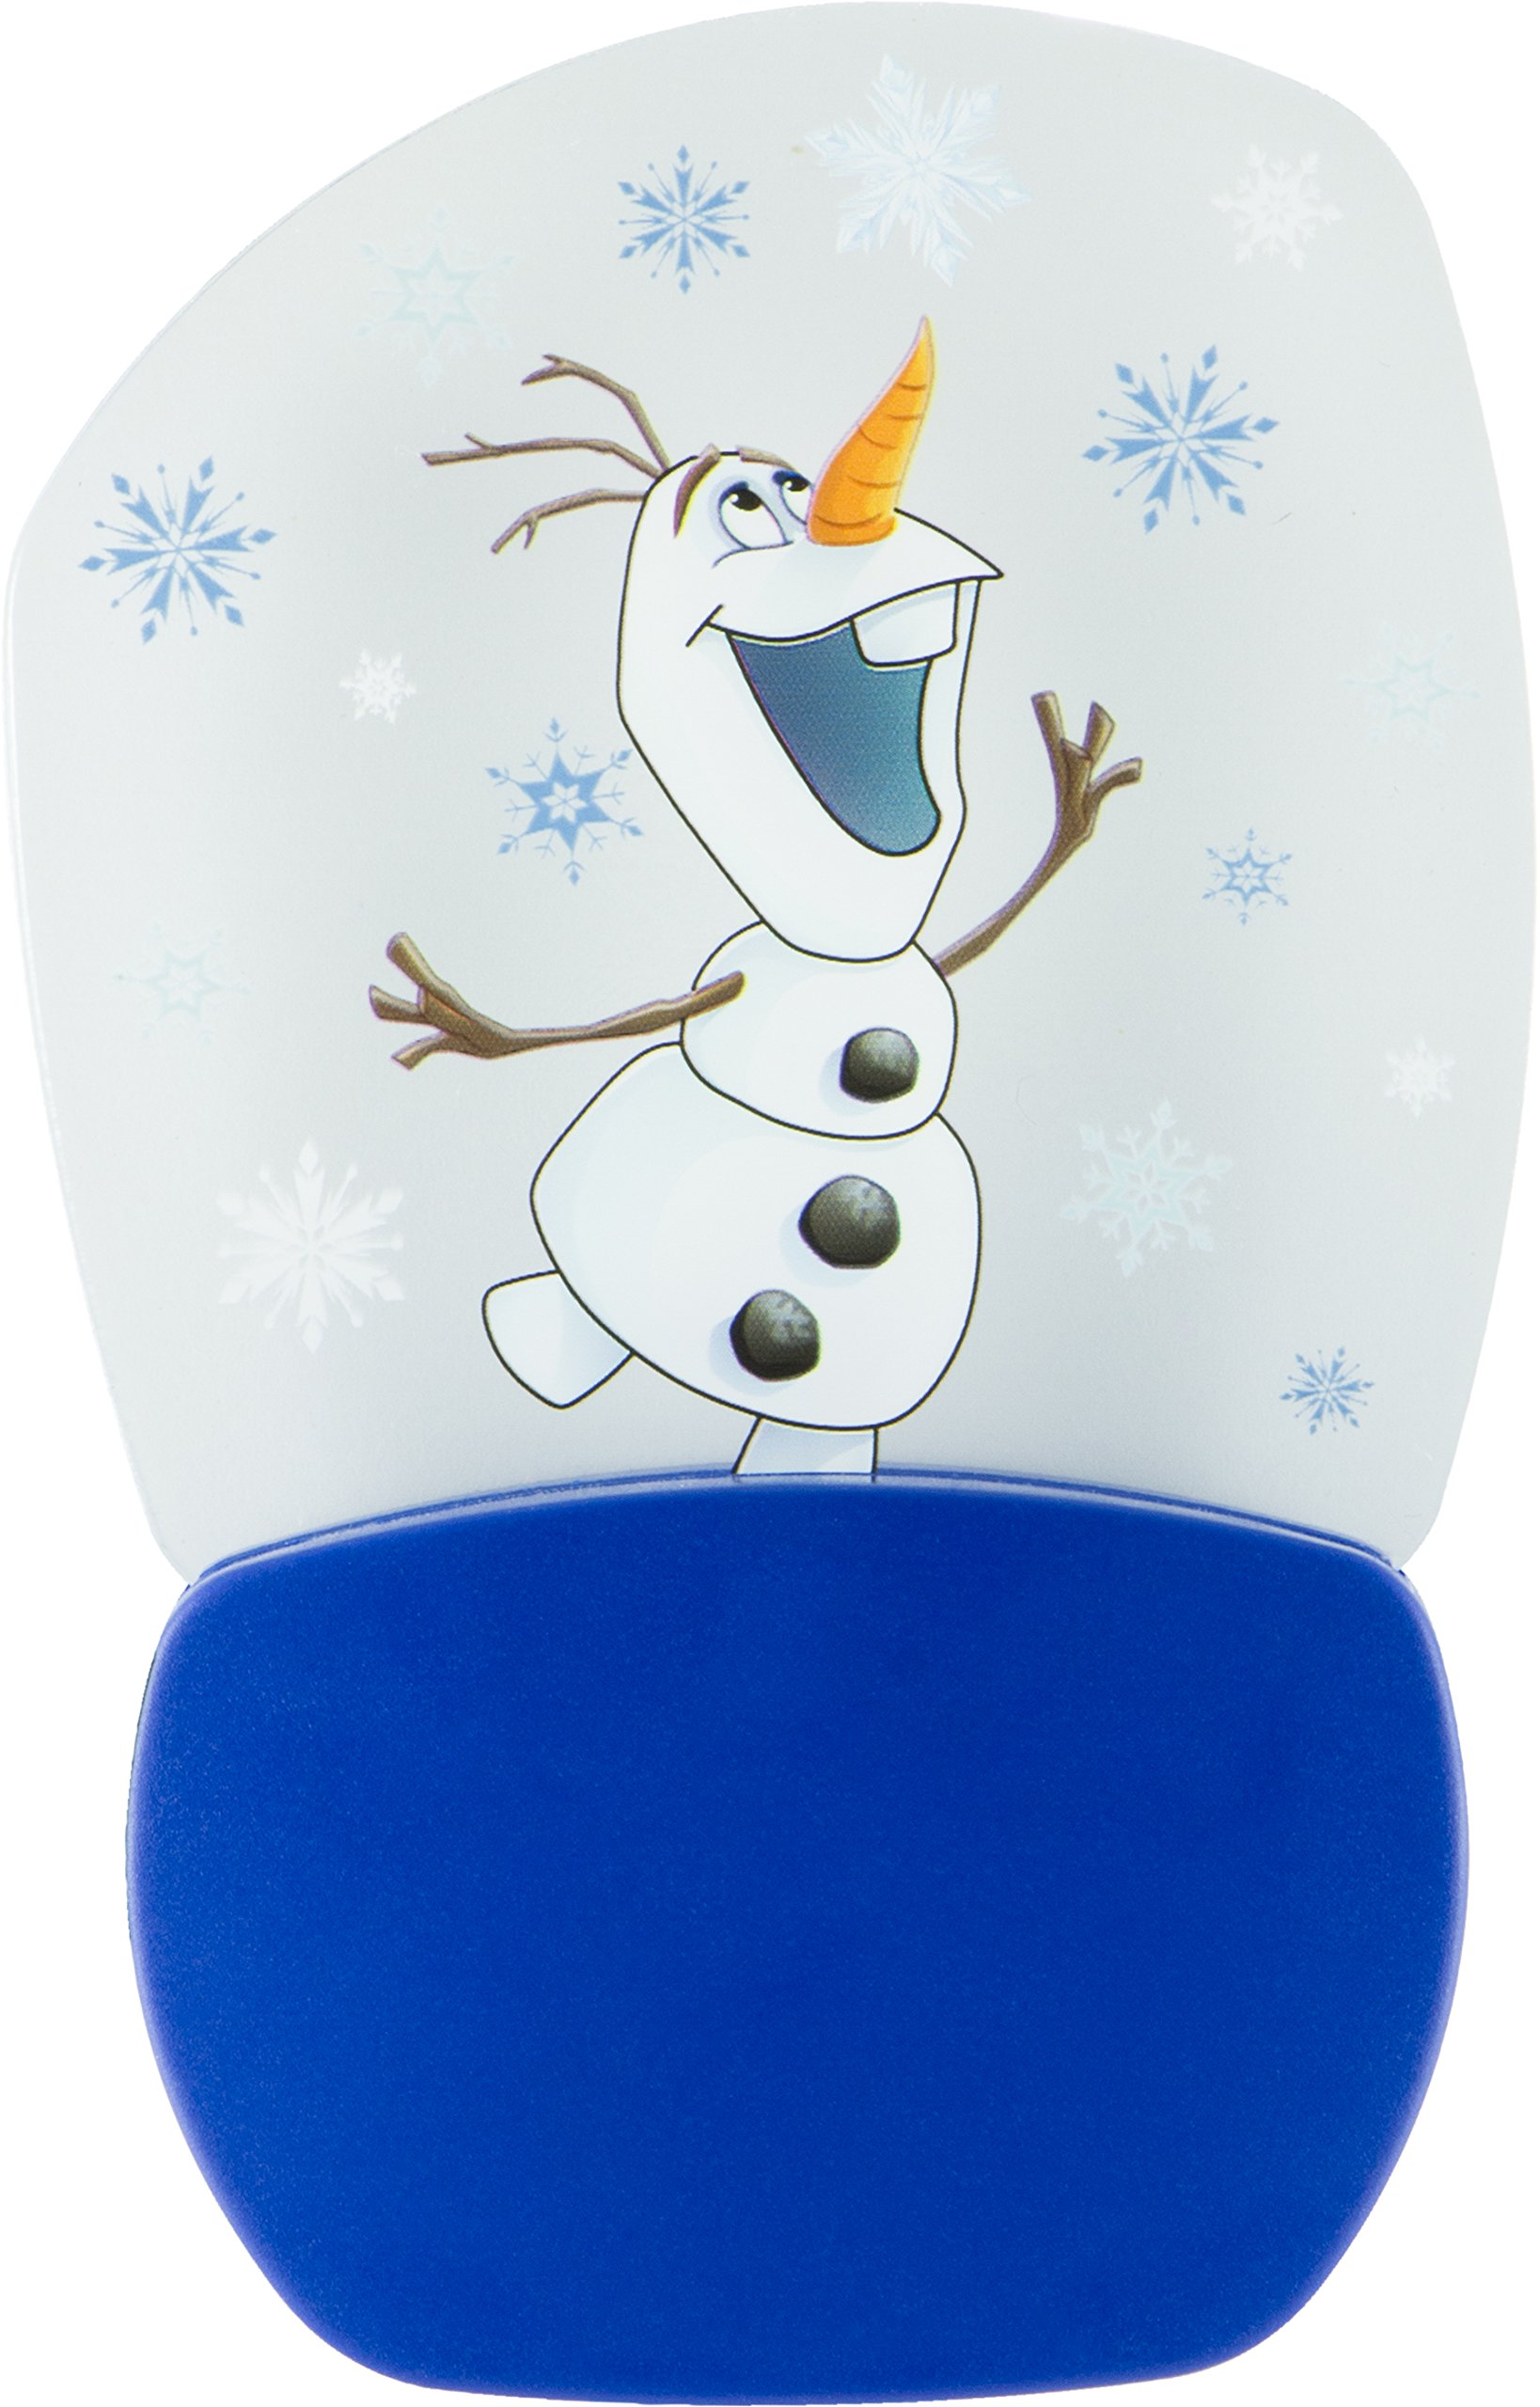 Disney Frozen Olaf 3D Motion Effect Night Light, Soft White Glow, Light Sensing, Long Life and Low Energy LED, 30766